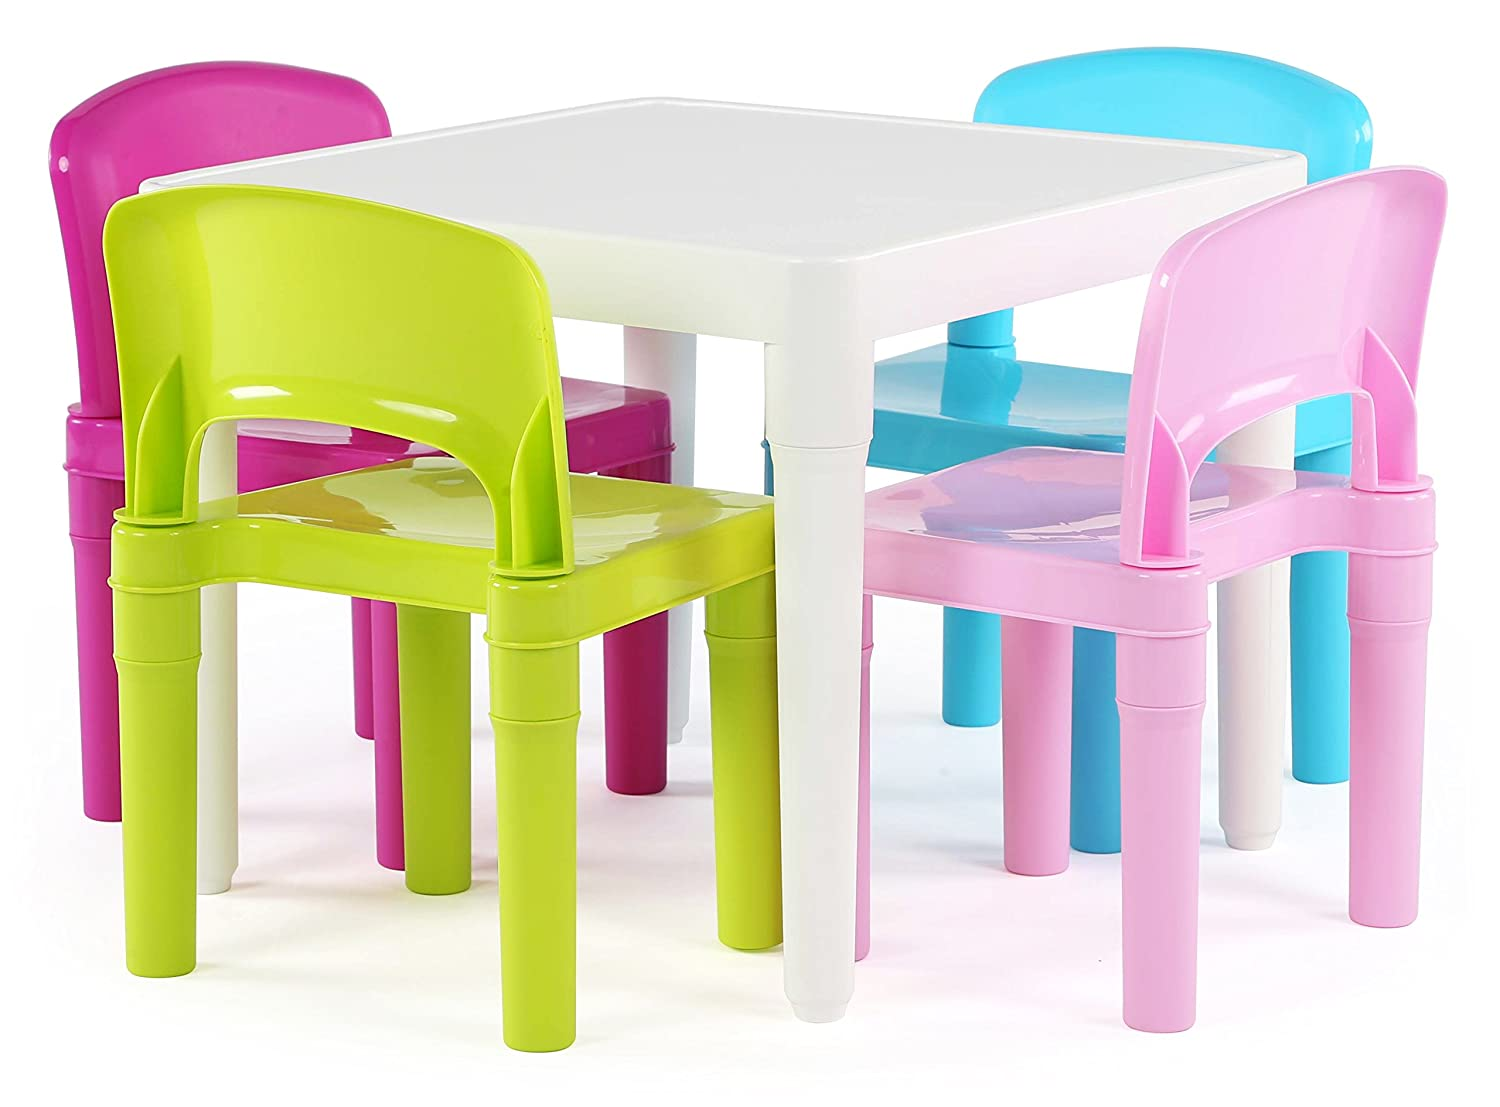 bright coloured furniture. Amazon.com: Tot Tutors Kids Plastic Table And 4 Chairs Set, Bright Colors: Kitchen \u0026 Dining Coloured Furniture L